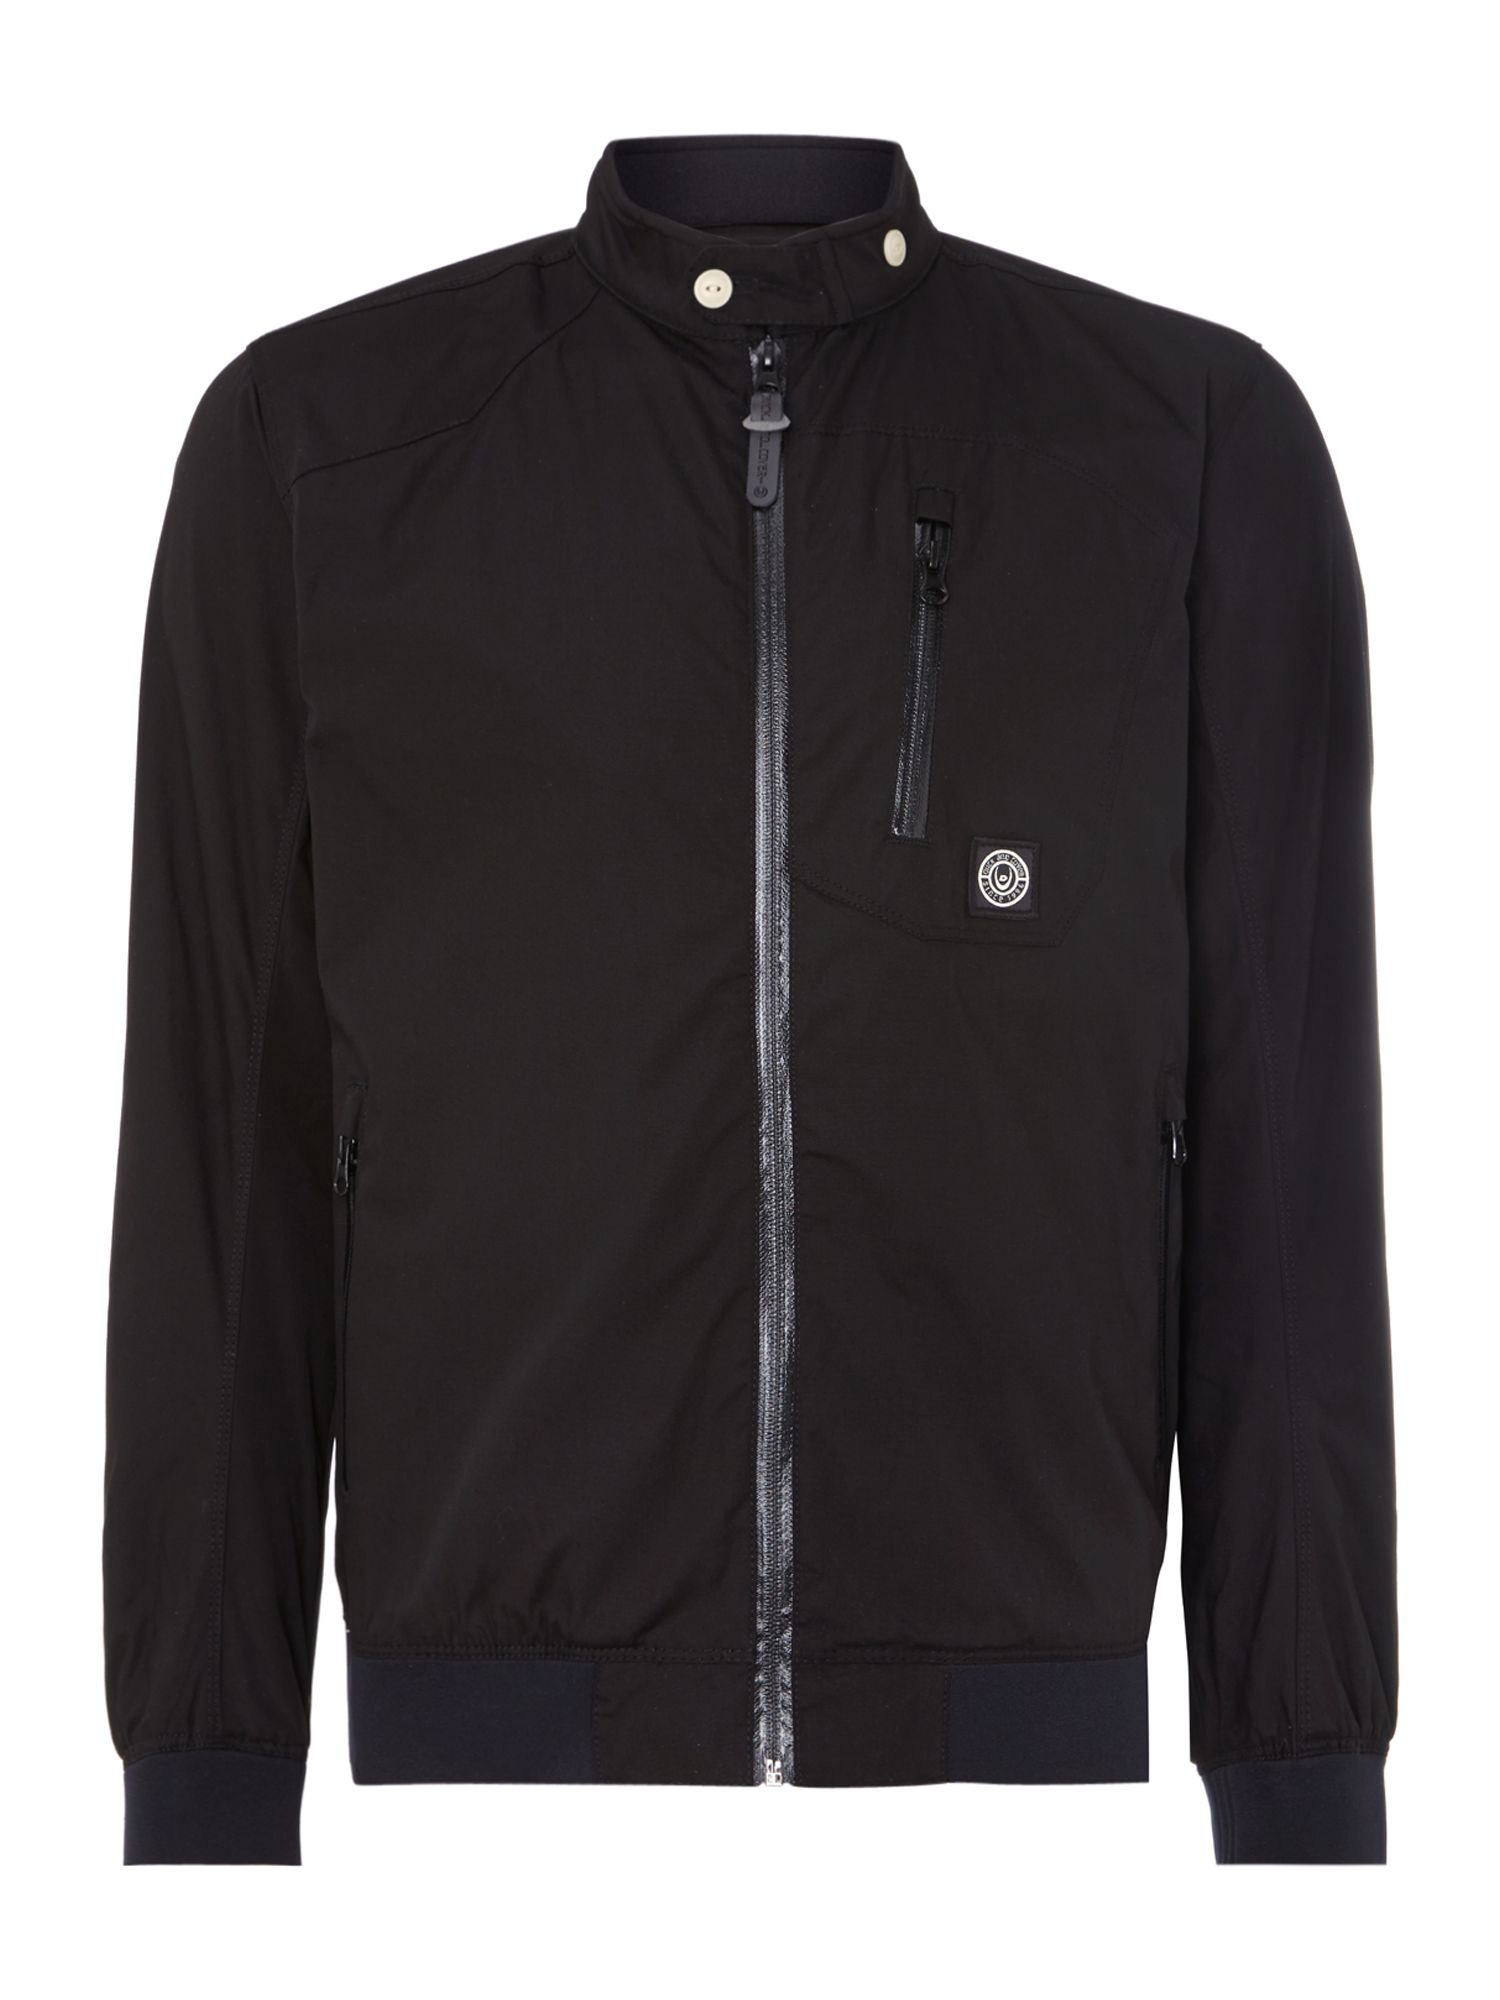 Gregor cotton harrington style jacket